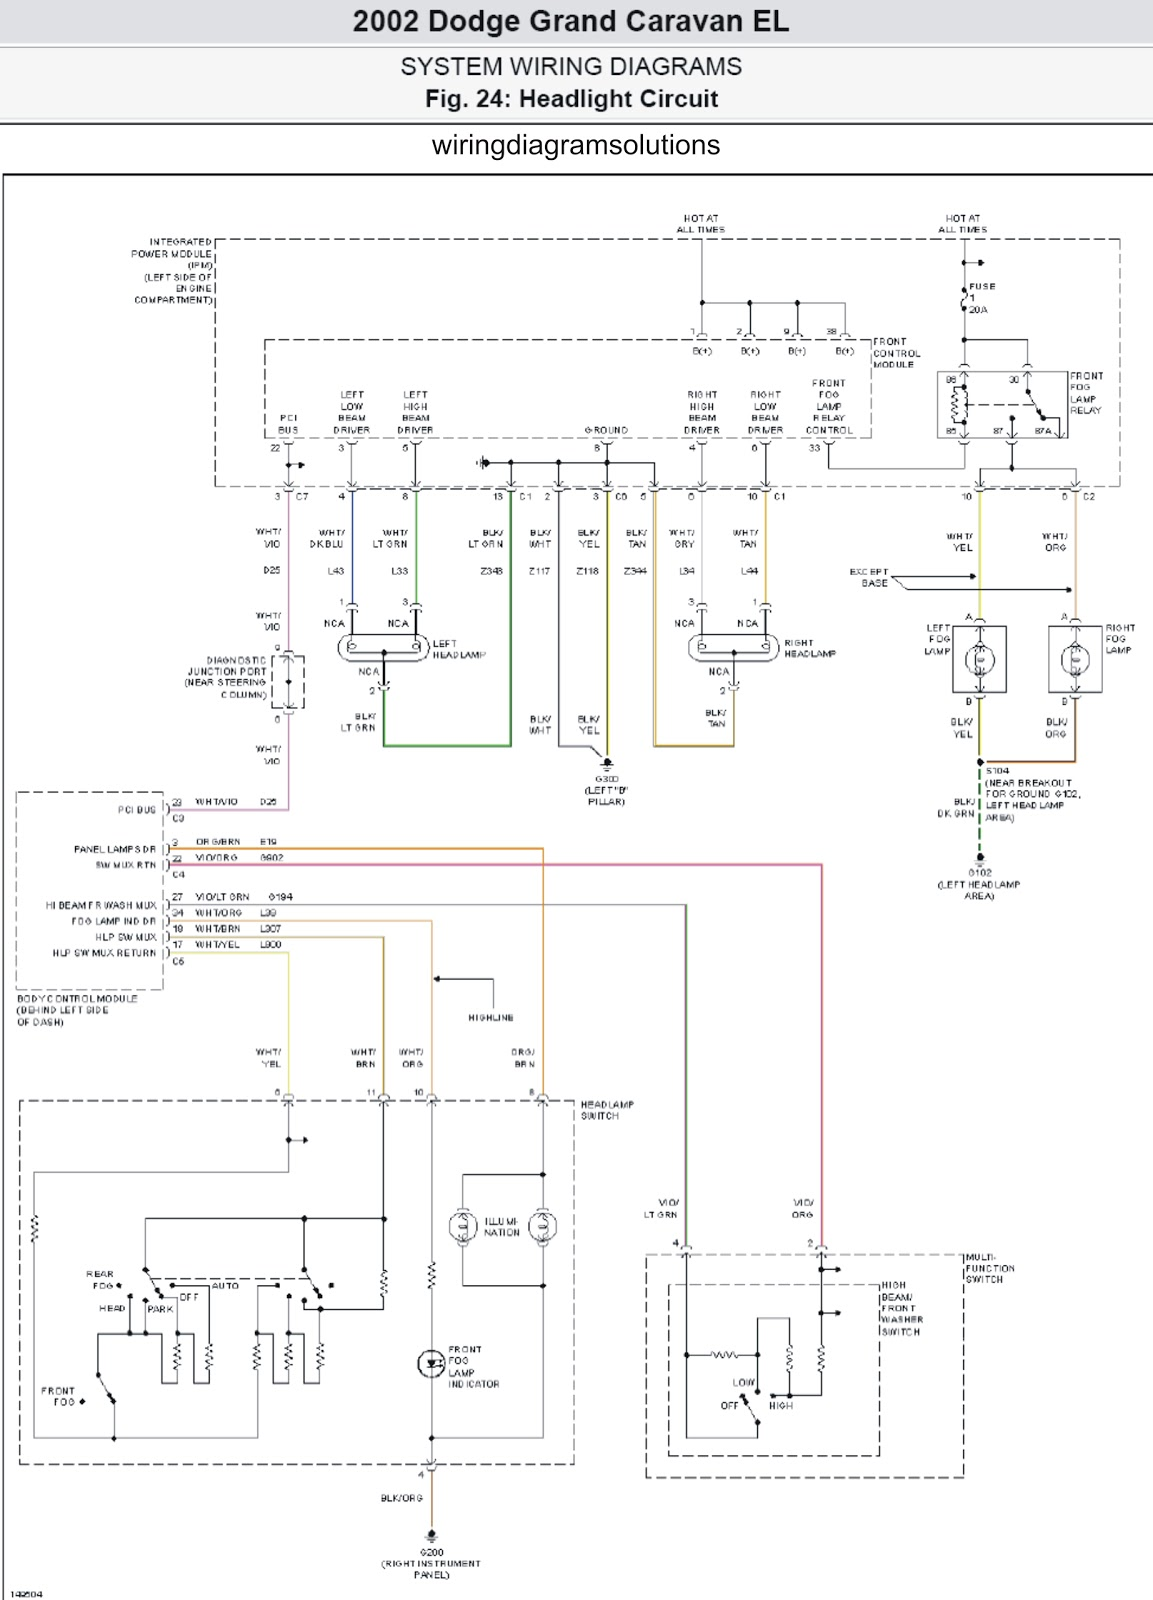 2002+dodge+caravan+Headlight+Circuit 99 dodge neon wiring diagram wiring diagram simonand dodge ignition wiring diagram at aneh.co